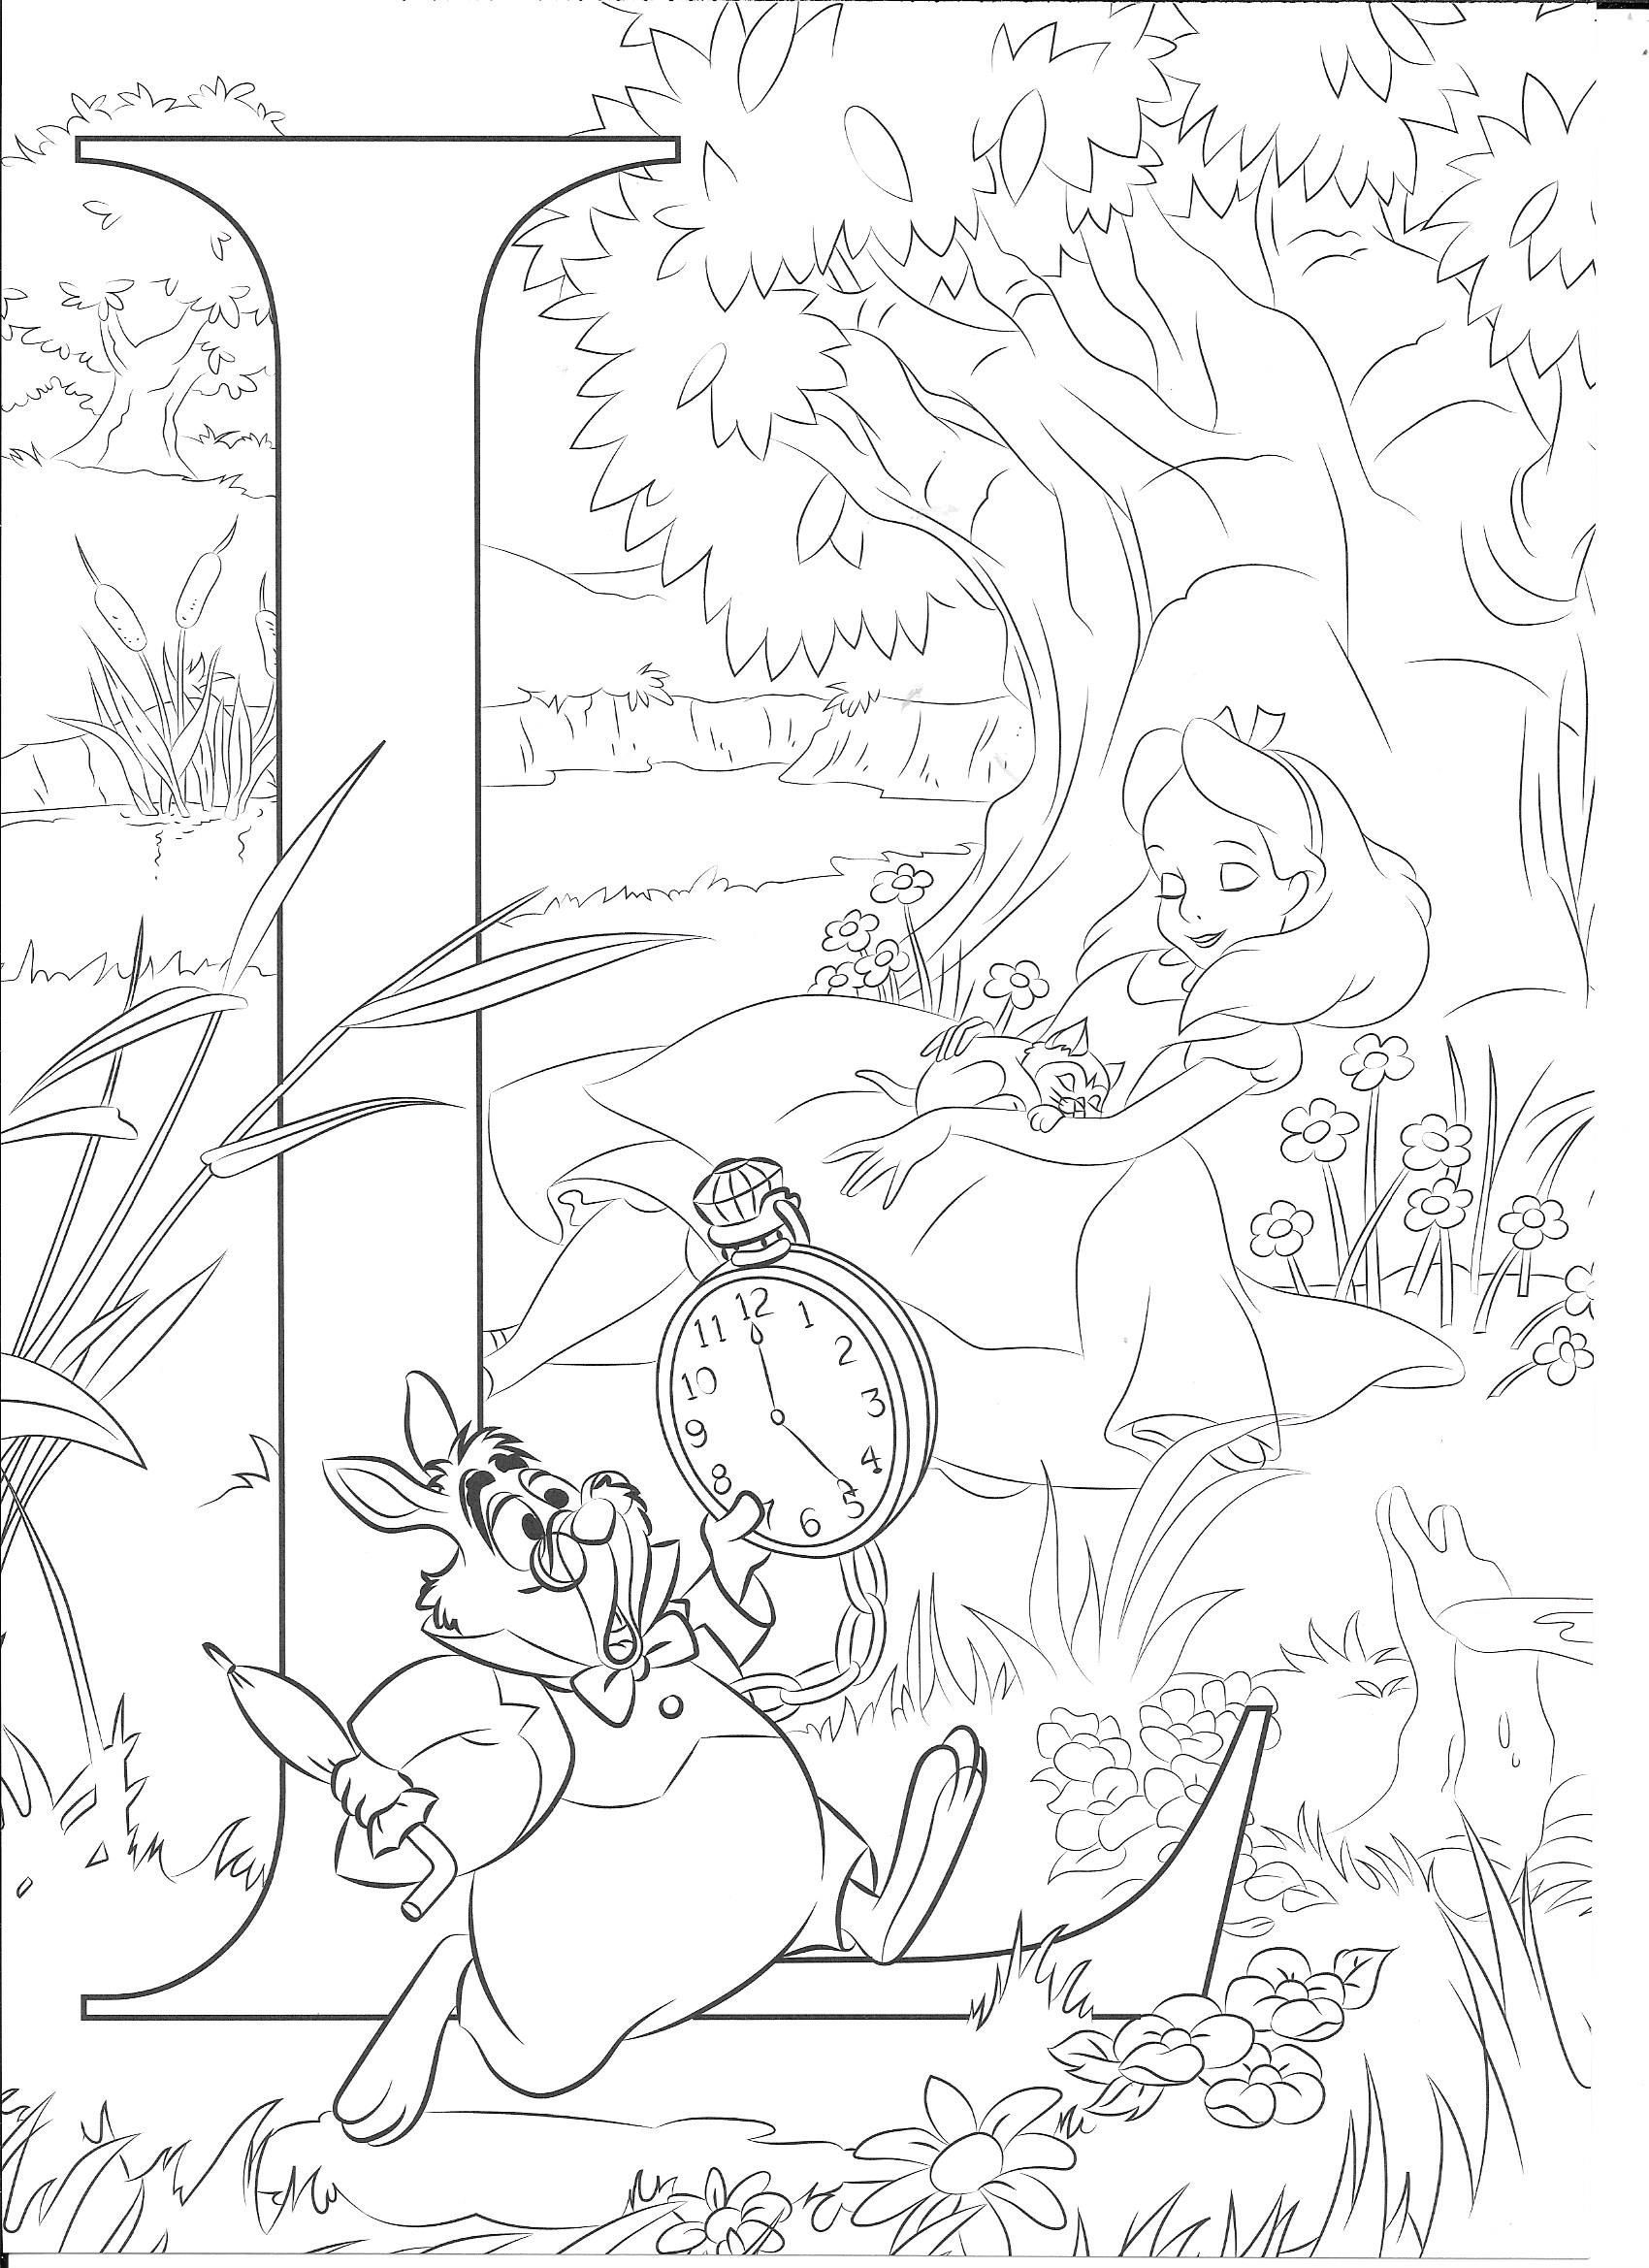 Best Pictures Alphabet Coloring Sheets Style It S Really No Top Secret That Color Te In 2021 Disney Coloring Sheets Disney Coloring Pages Printables Abc Coloring Pages